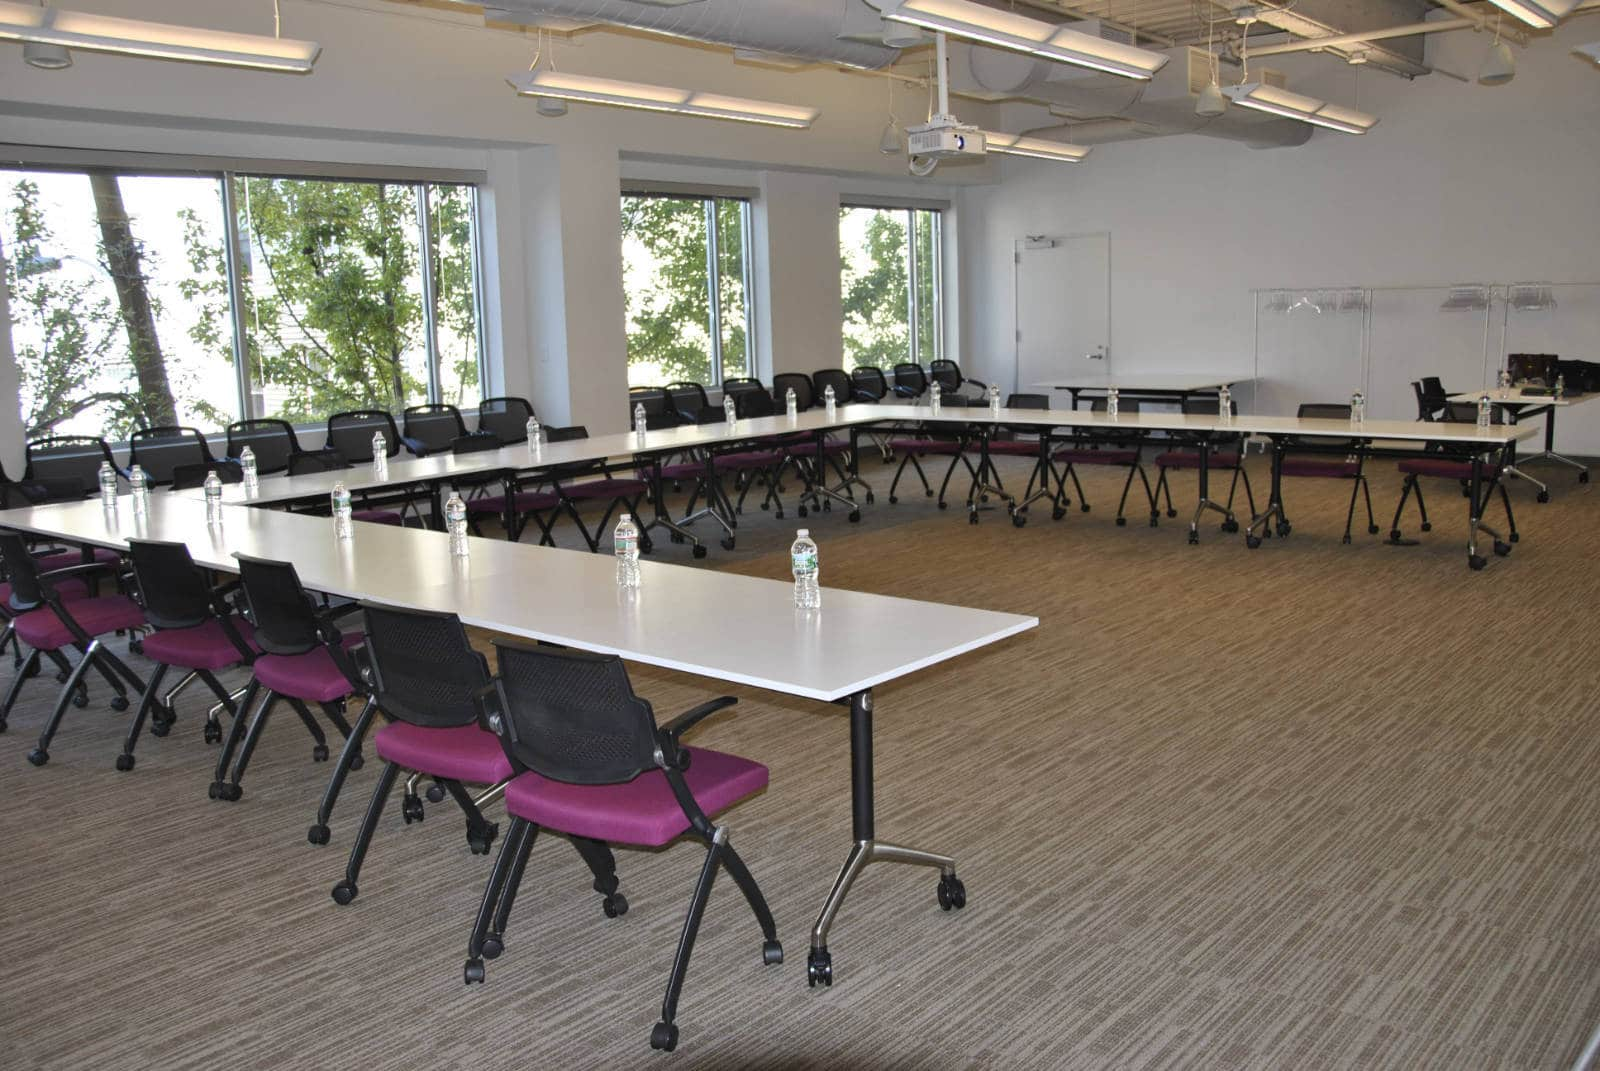 Interior shot of a large, empty conference room space. White walls and large white tables with purple chairs and bottles of water lined up at each place.